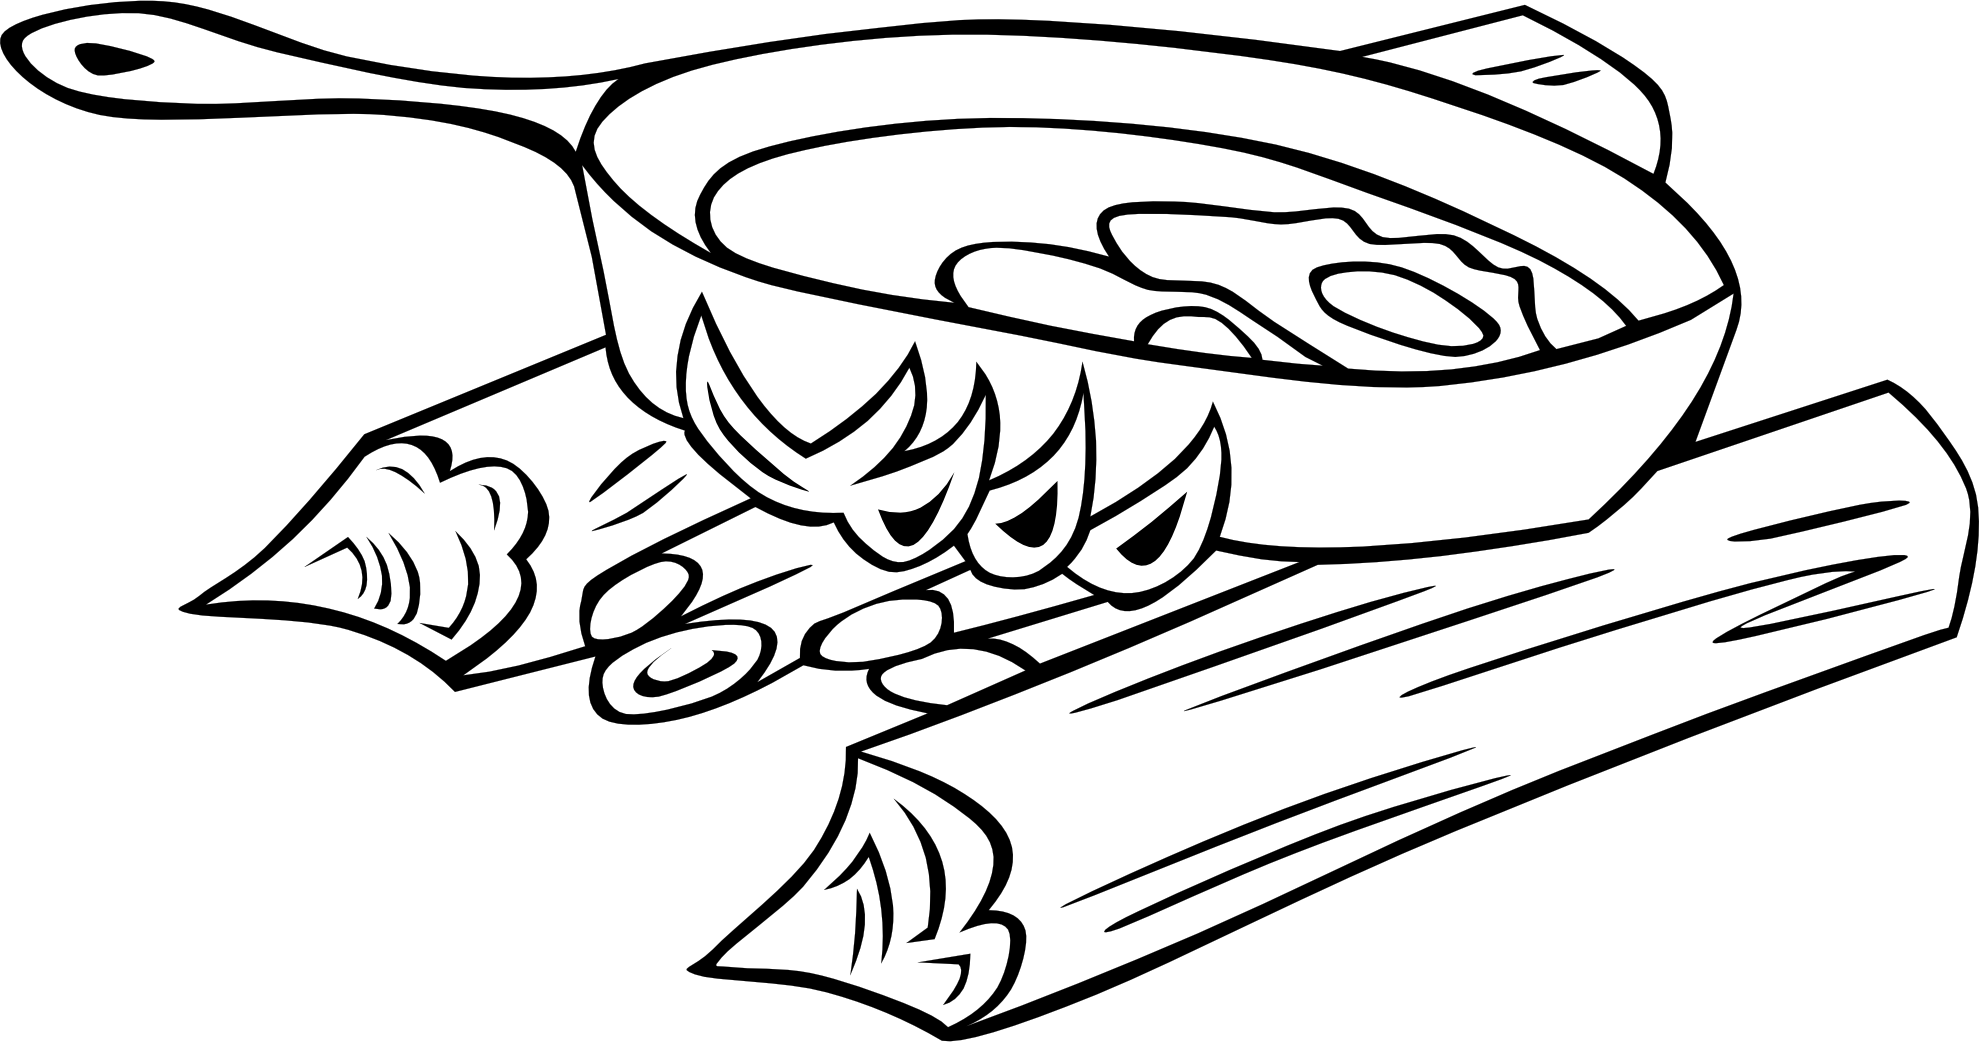 Heat clipart black and white. Campfire panda free images